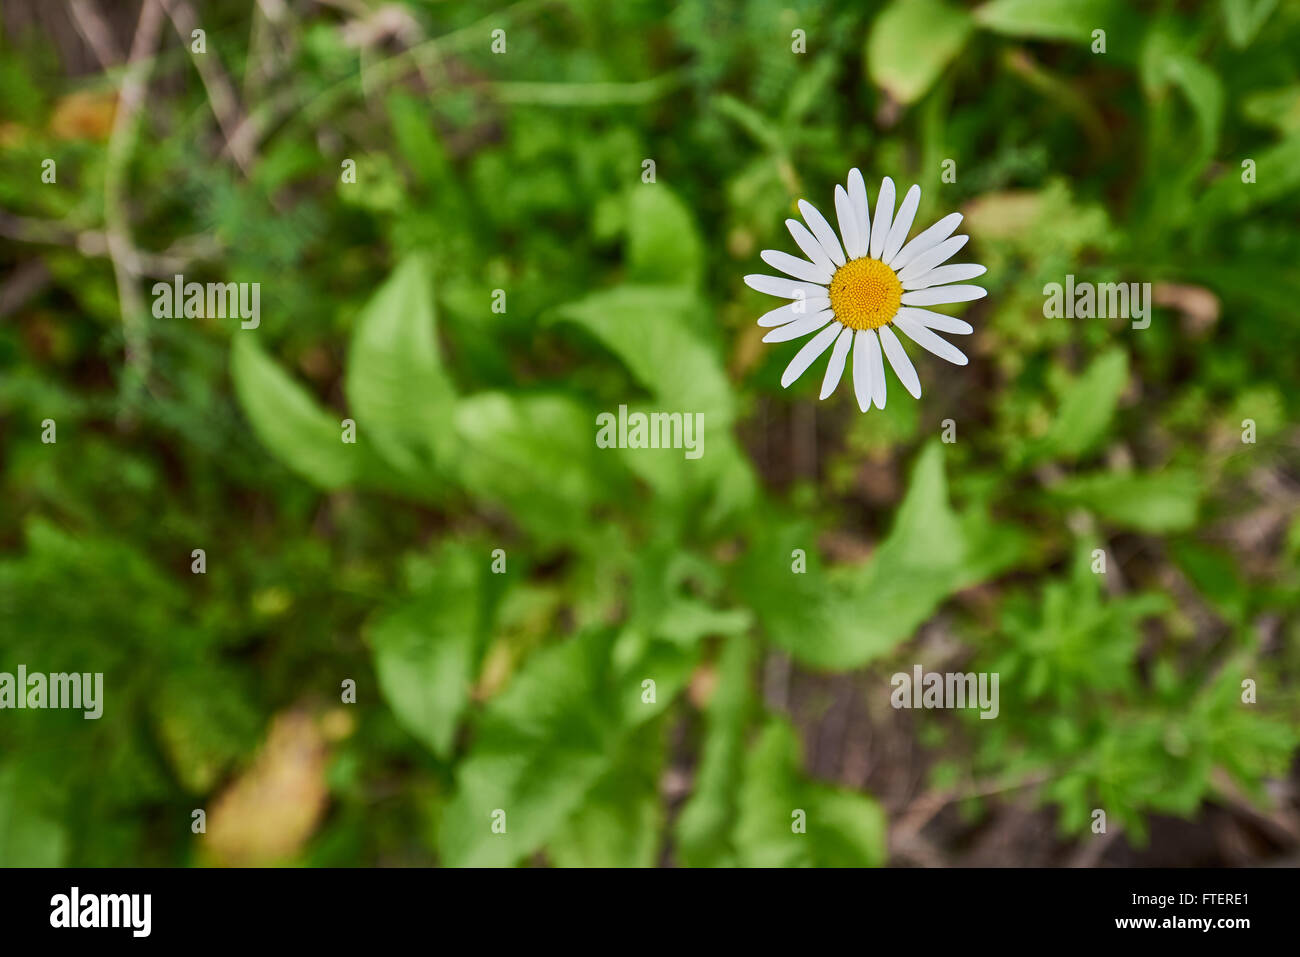 Corn Chamomile Yellow And White Daisy Like Flowers Growing Wild In